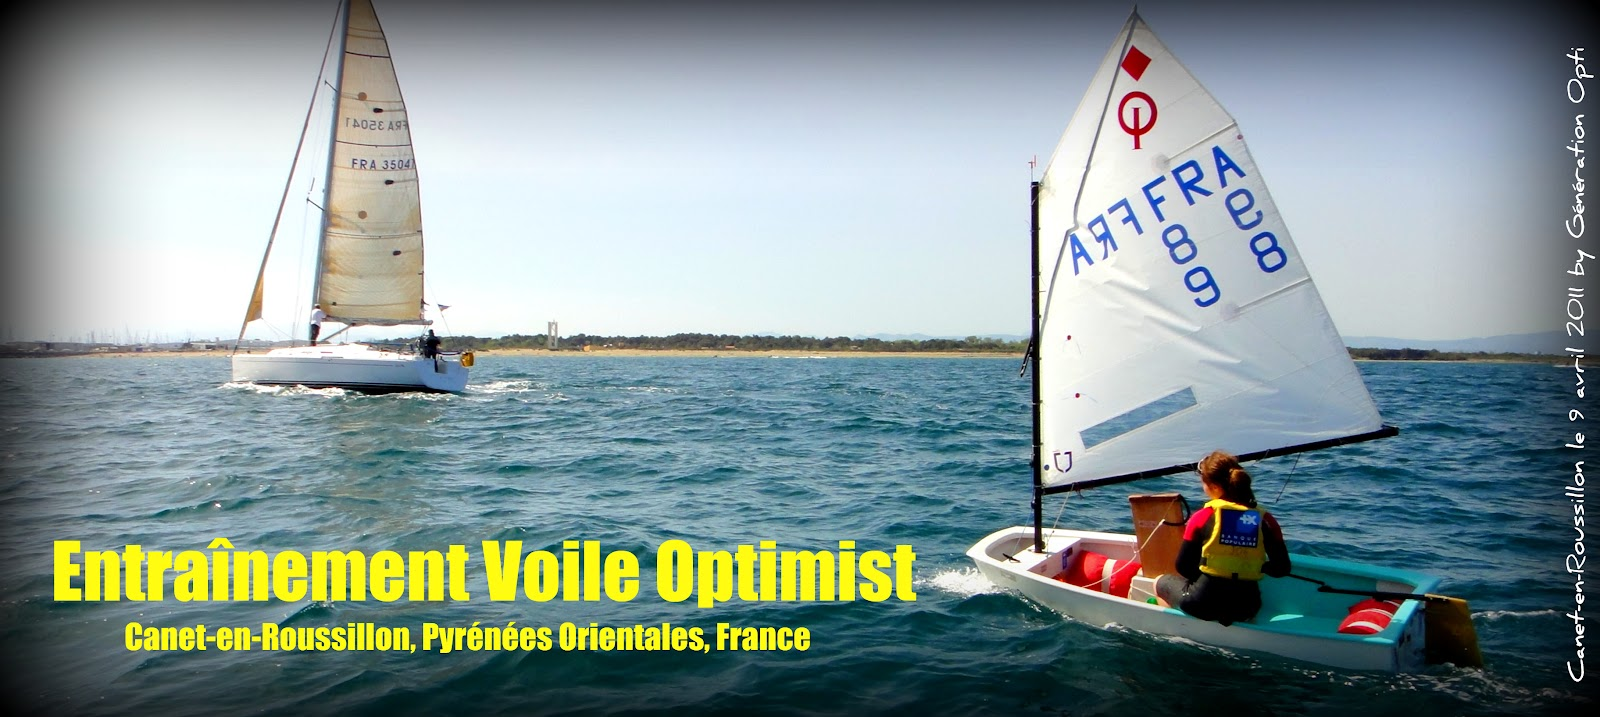 voile canet optimist generation-opti